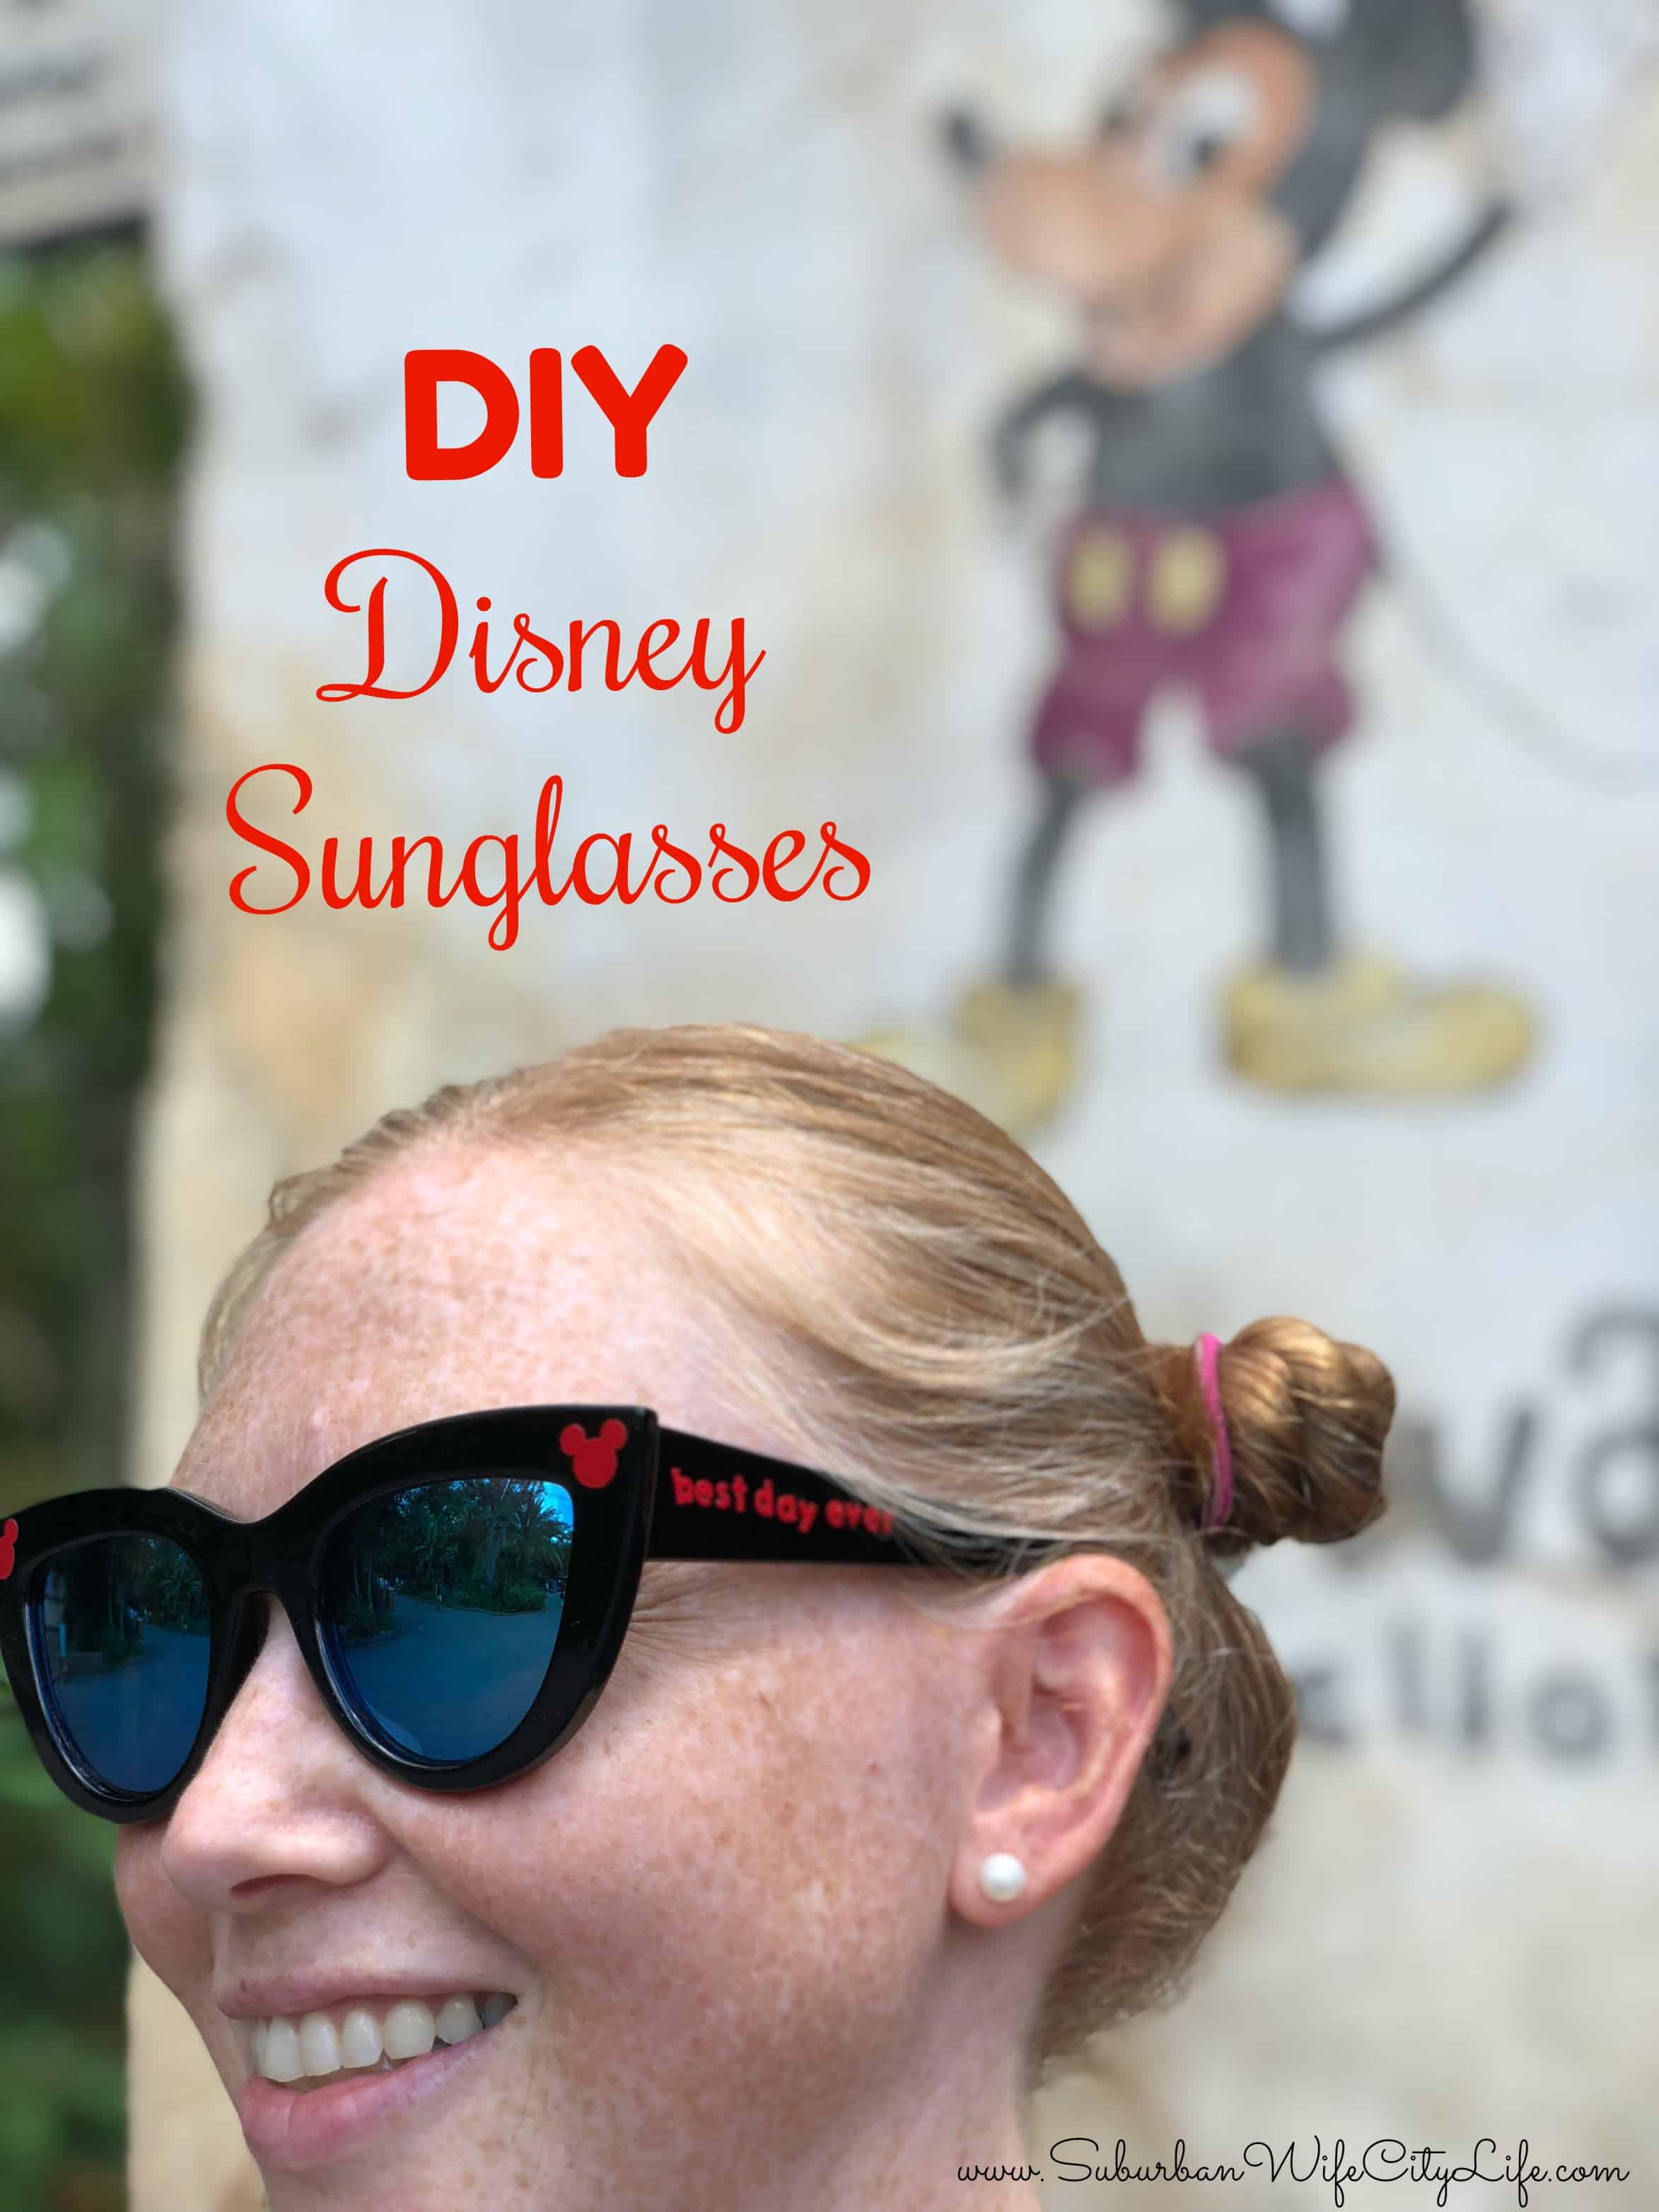 DIY Disney Sunglasses